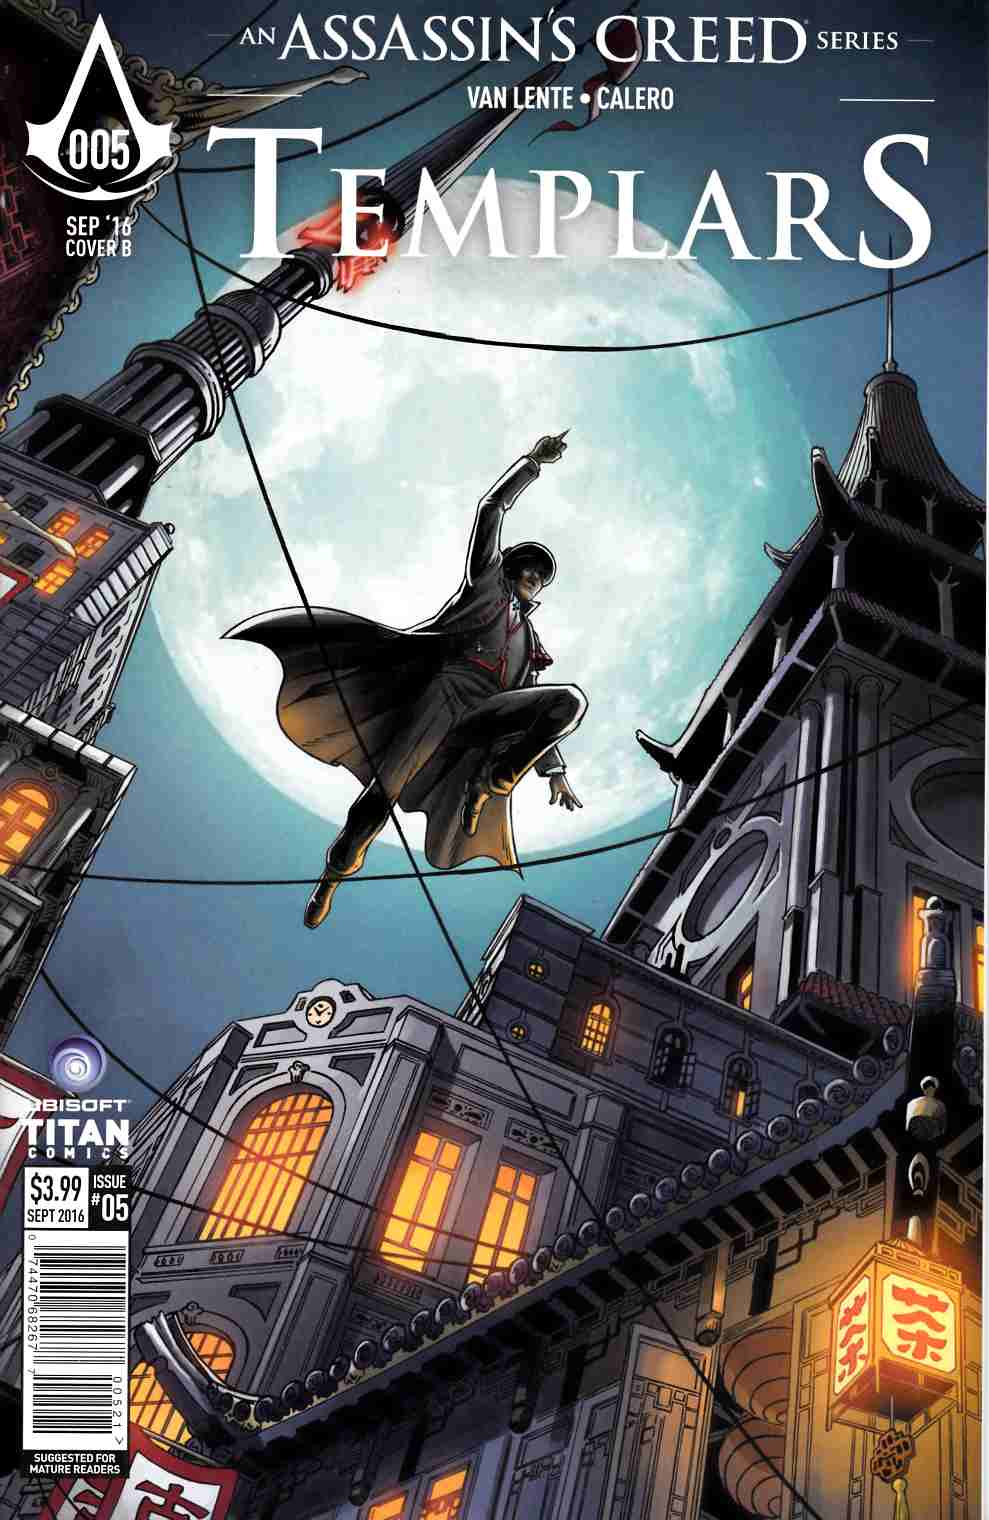 Assassins Creed Templars #5 Cover B [Titan Comic] THUMBNAIL